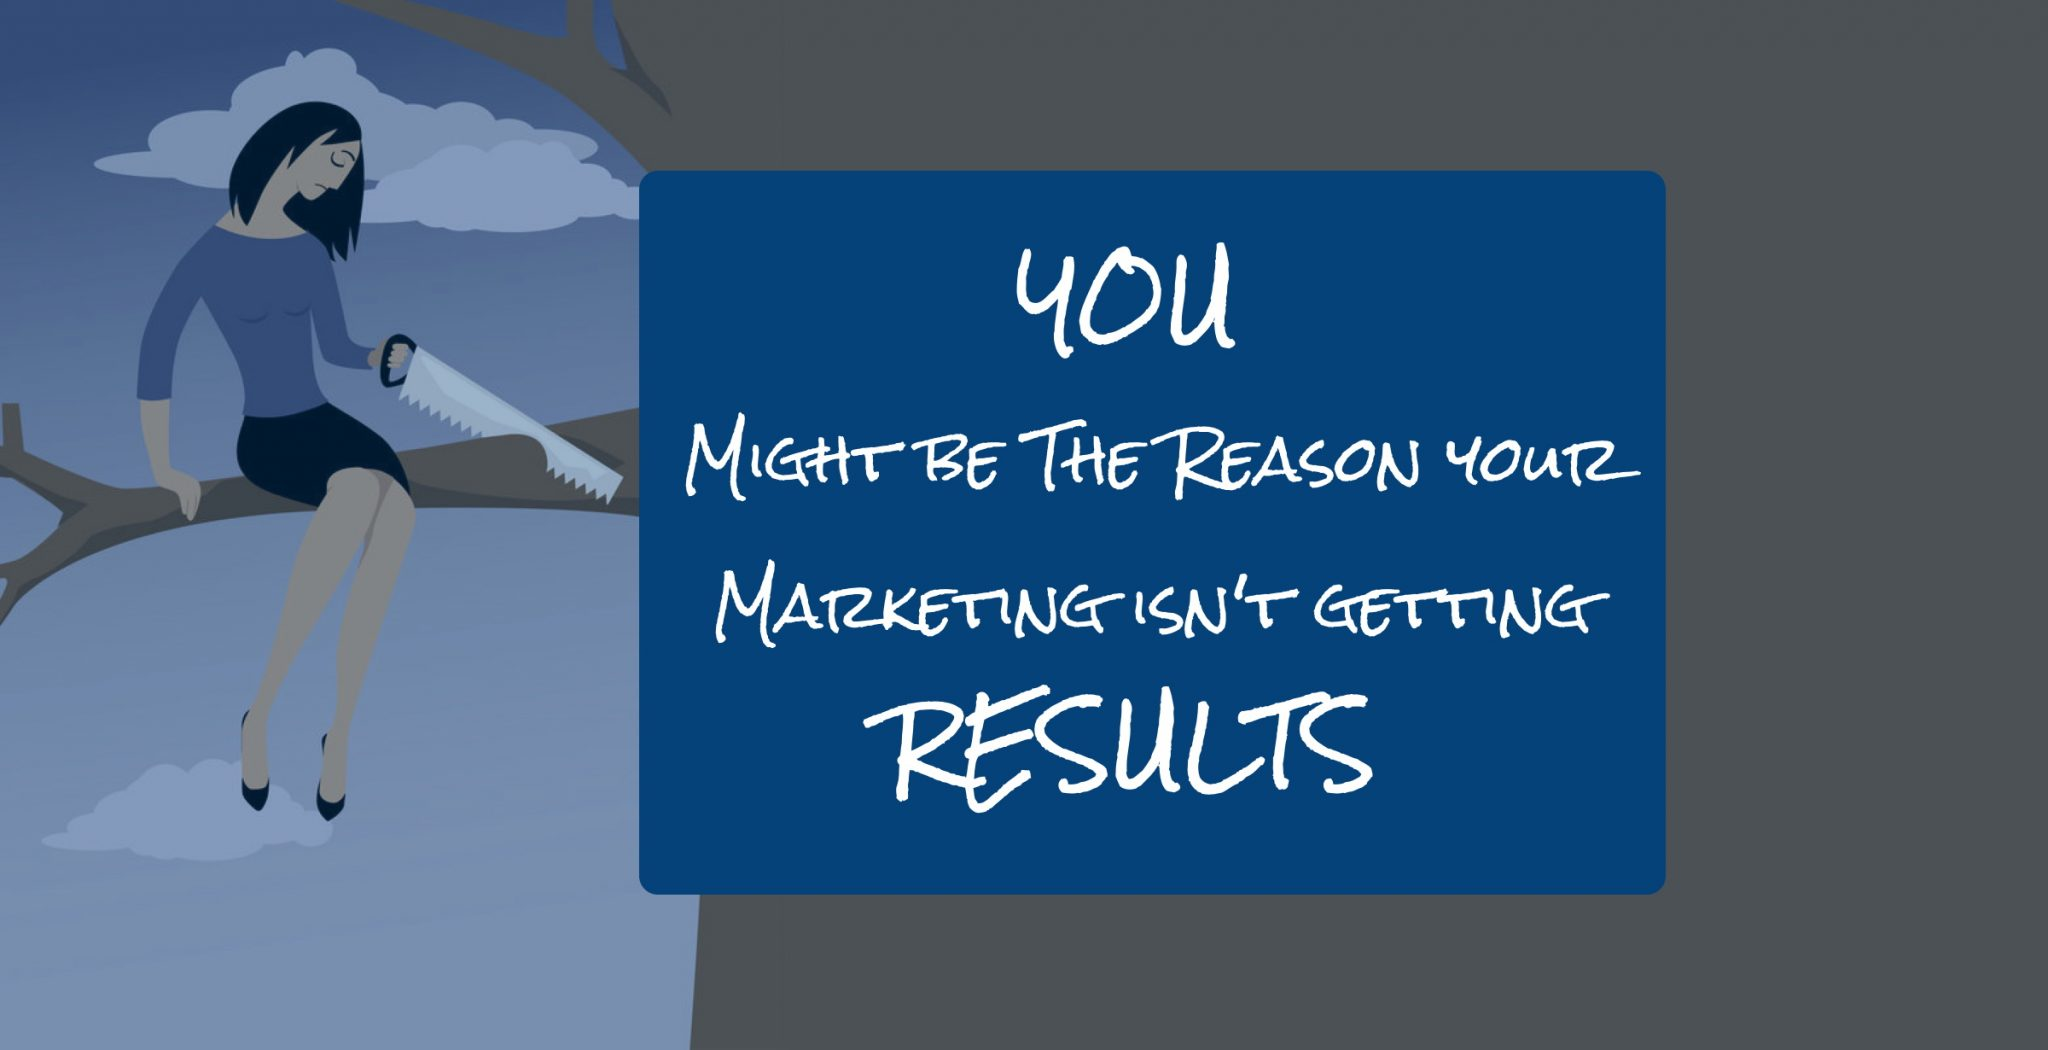 You Might be the Reason your Marketing Doesn't get Results 2